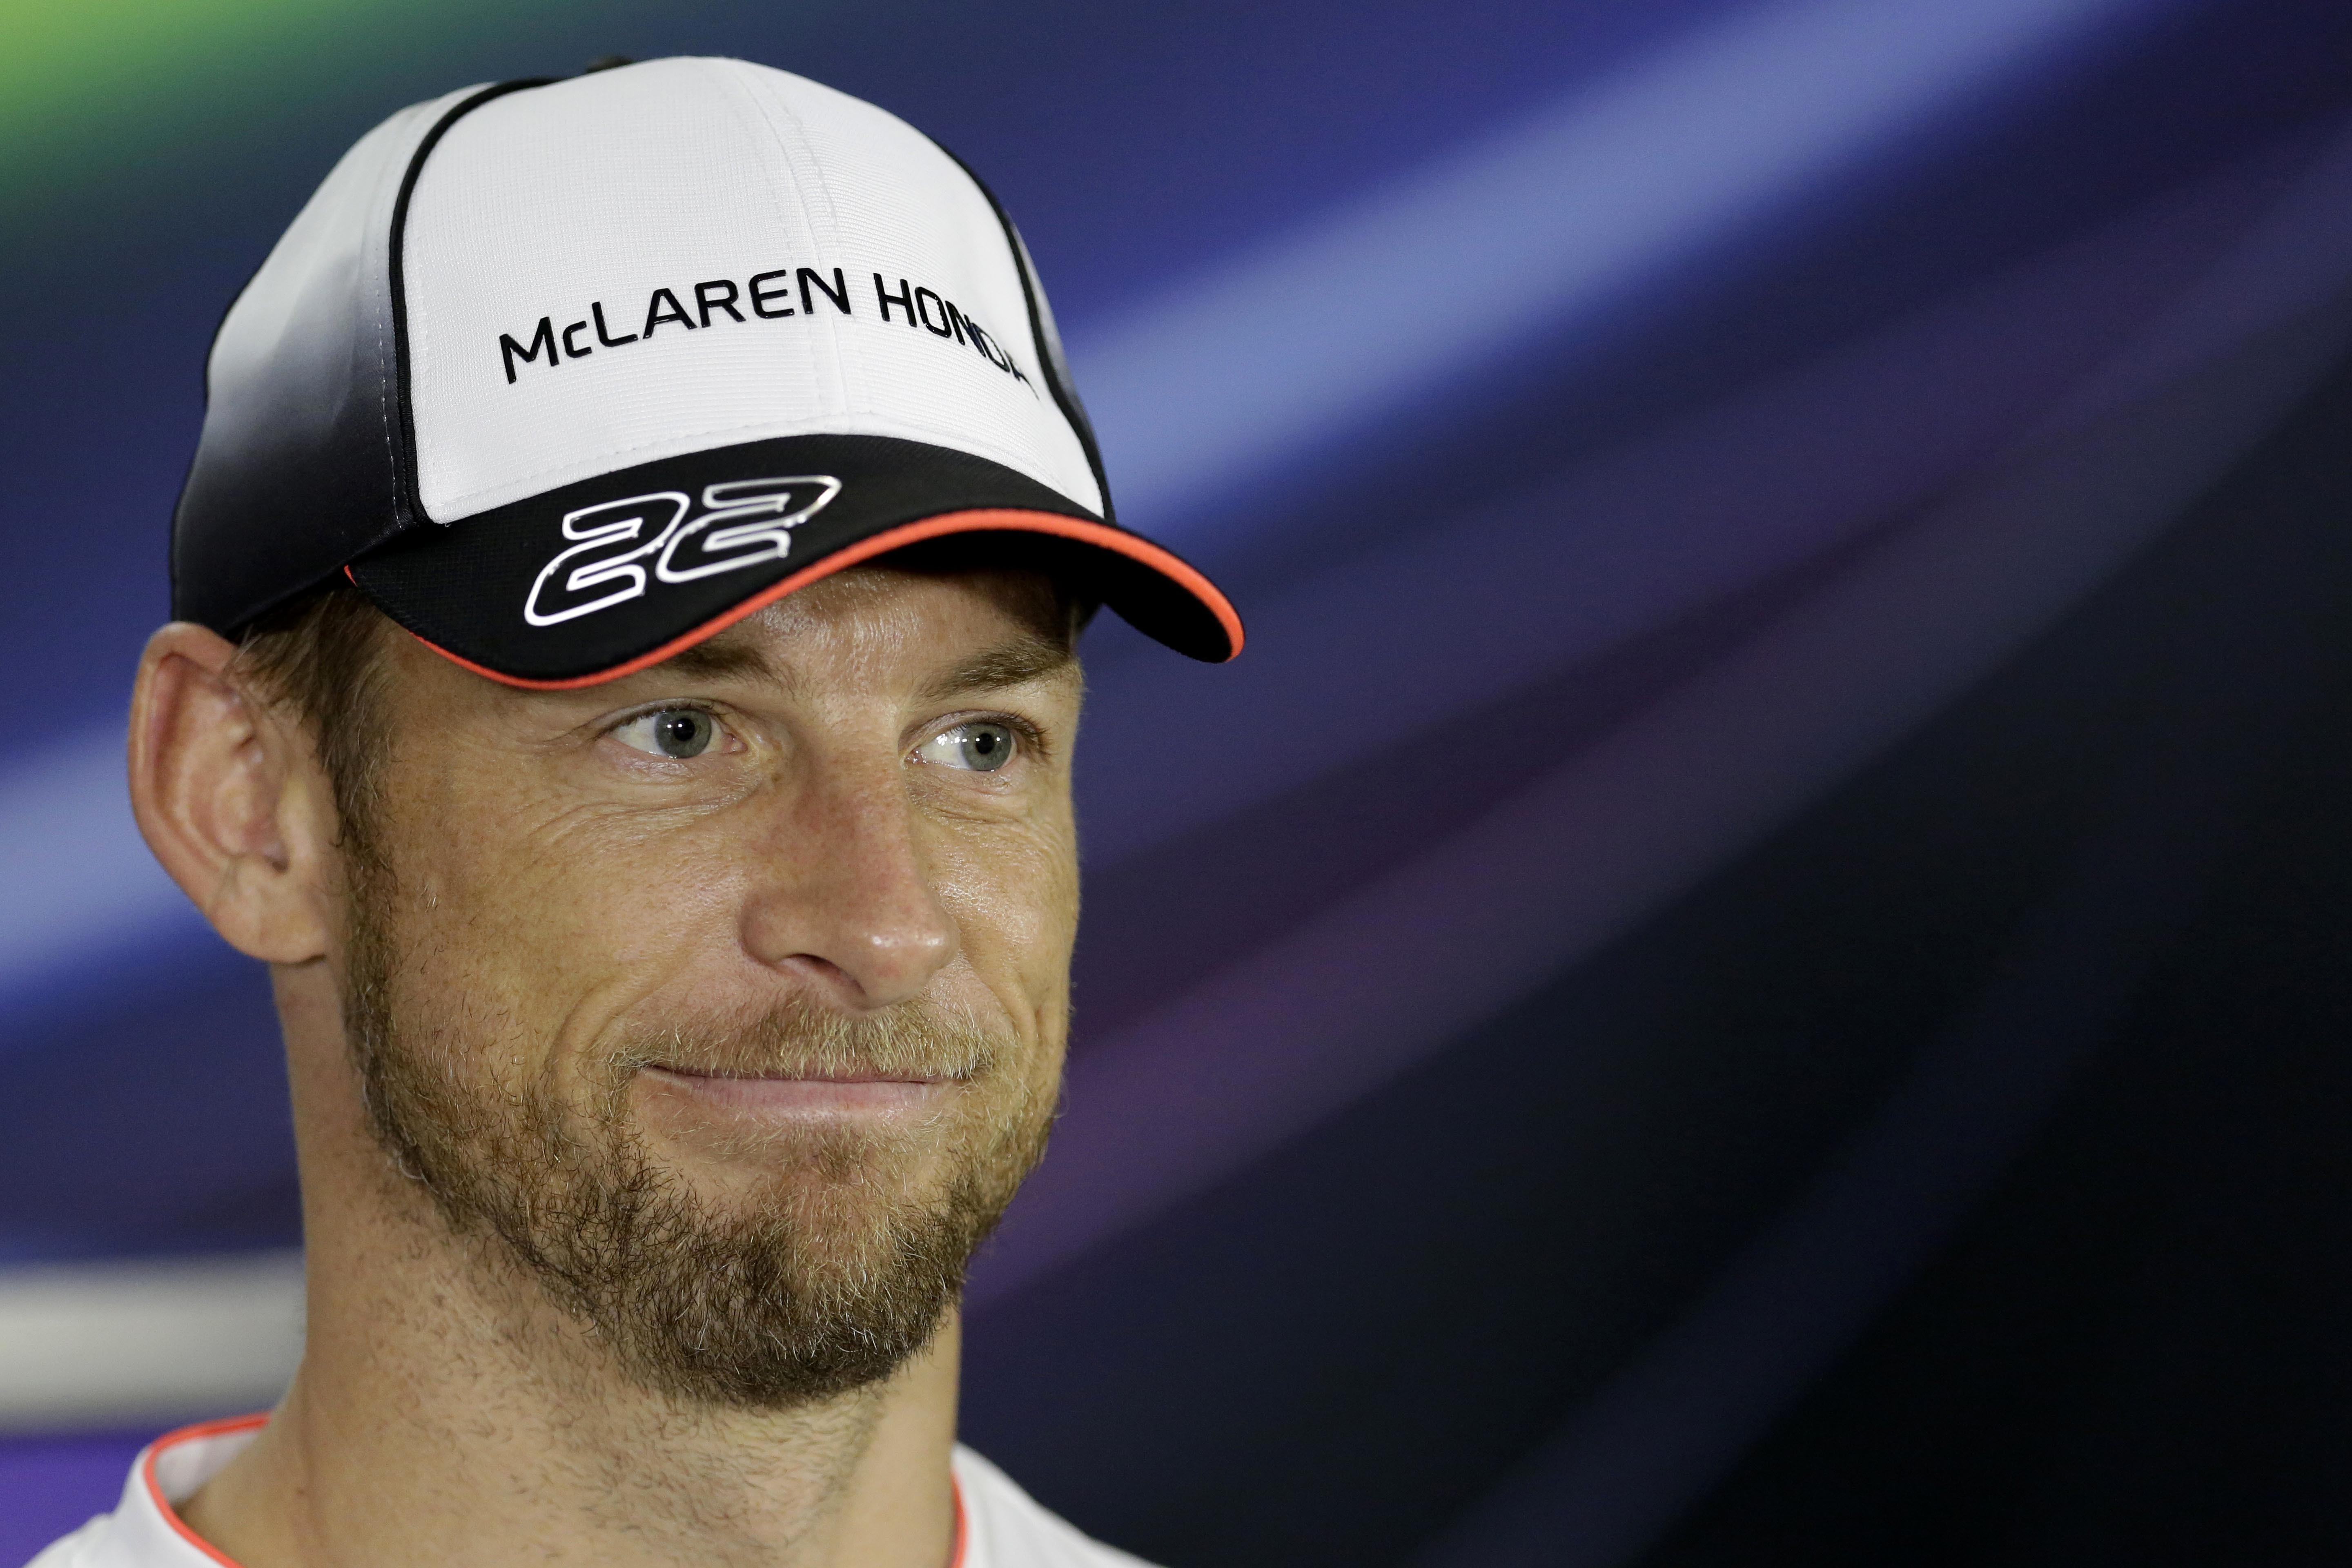 553eef187b630 McLaren driver Jenson Button of Britain reacts during a news conference at  the Yas Marina racetrack